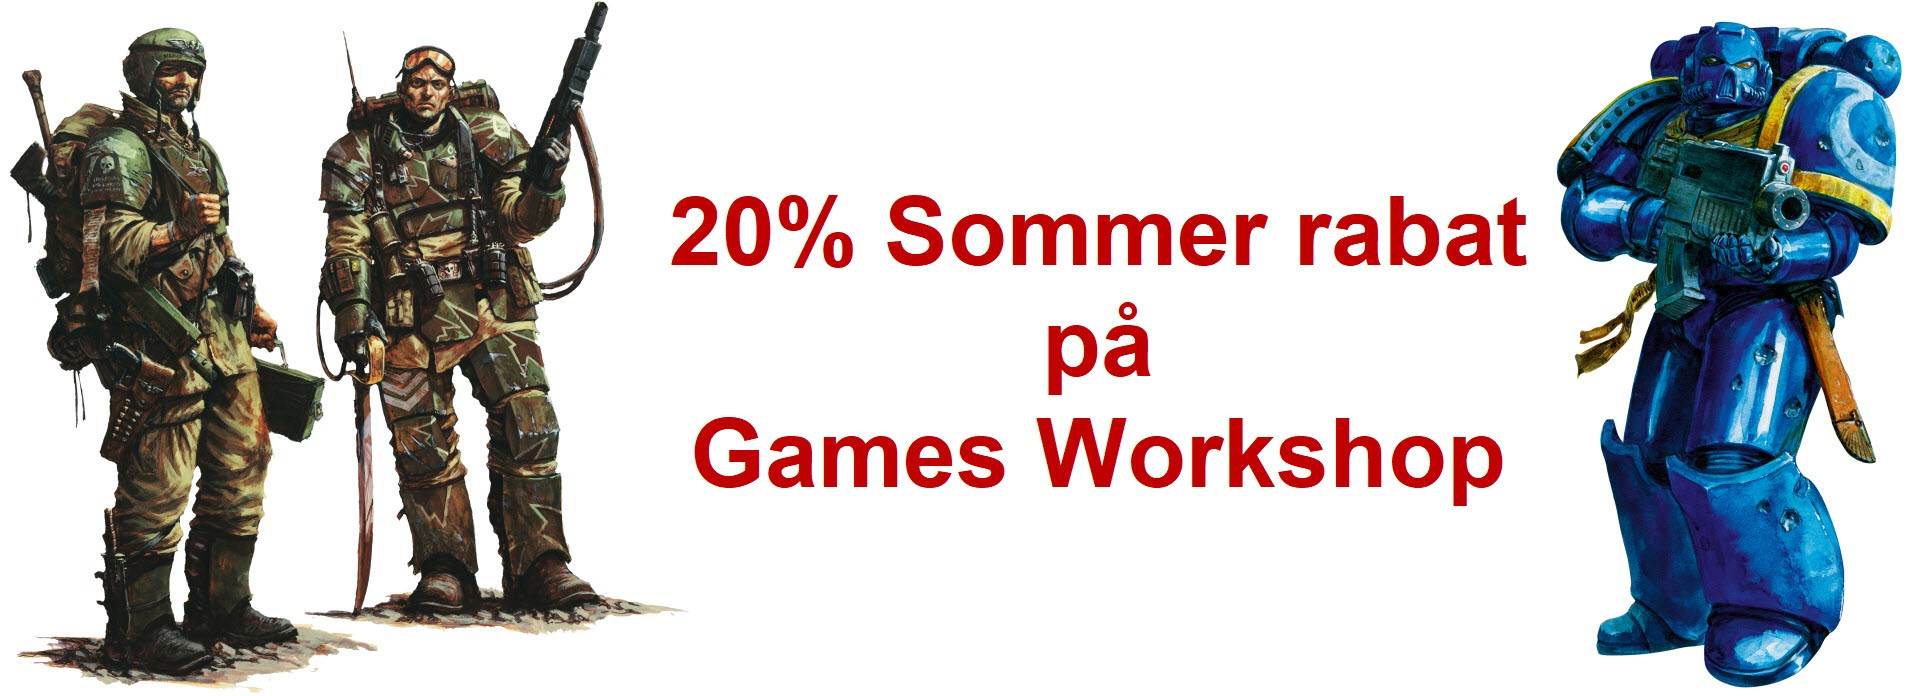 20% Sommer rabat på GamesWorkshop